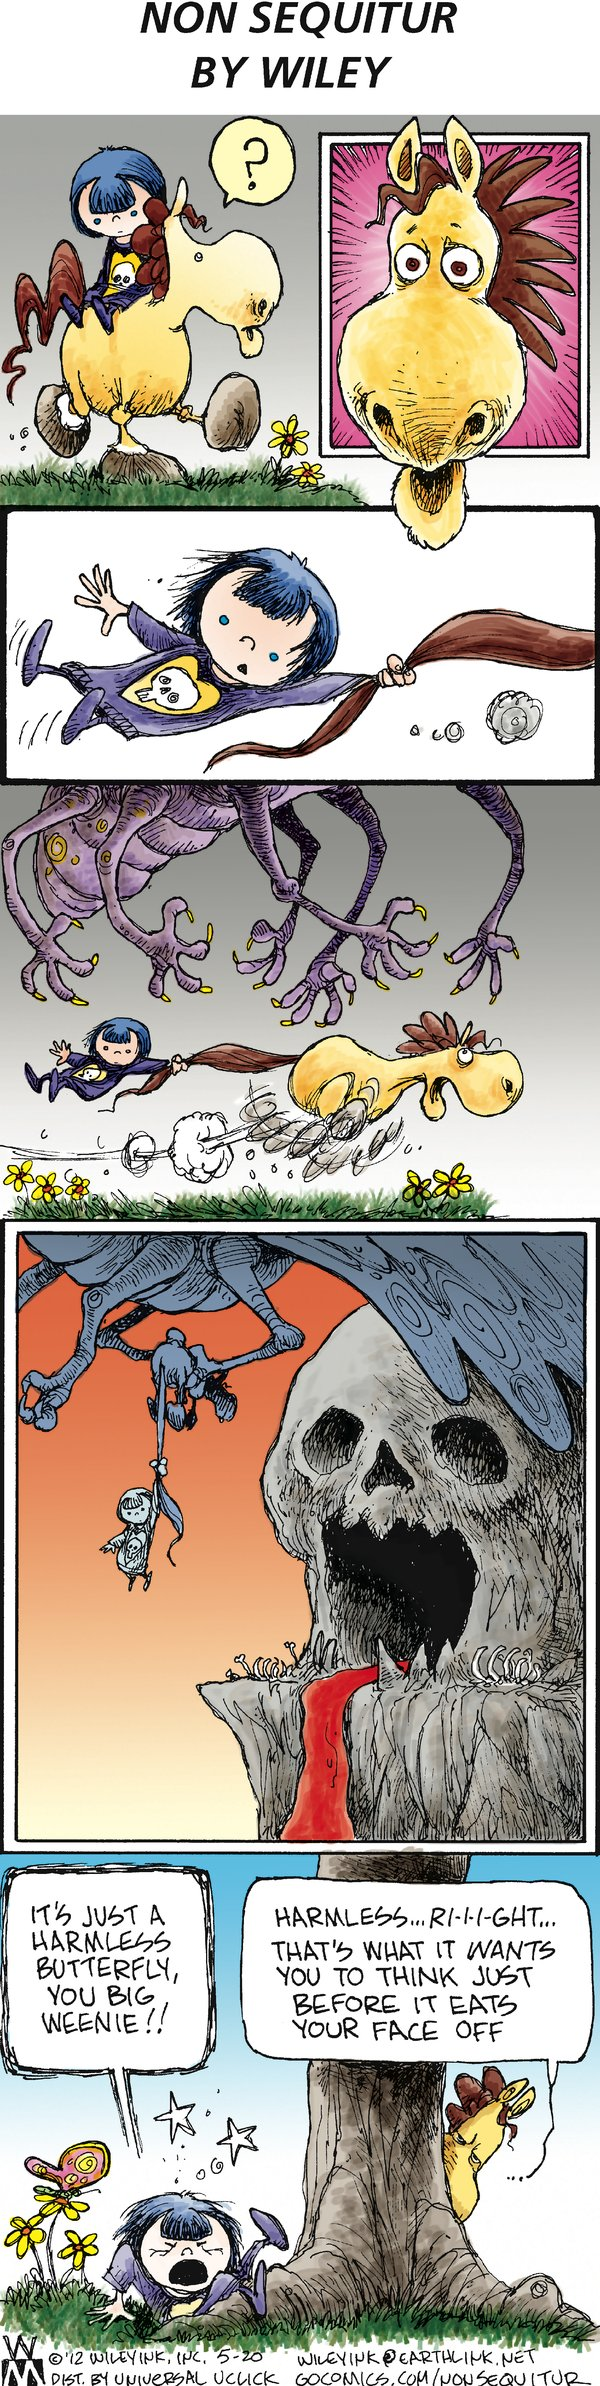 Non Sequitur for May 20, 2012 Comic Strip